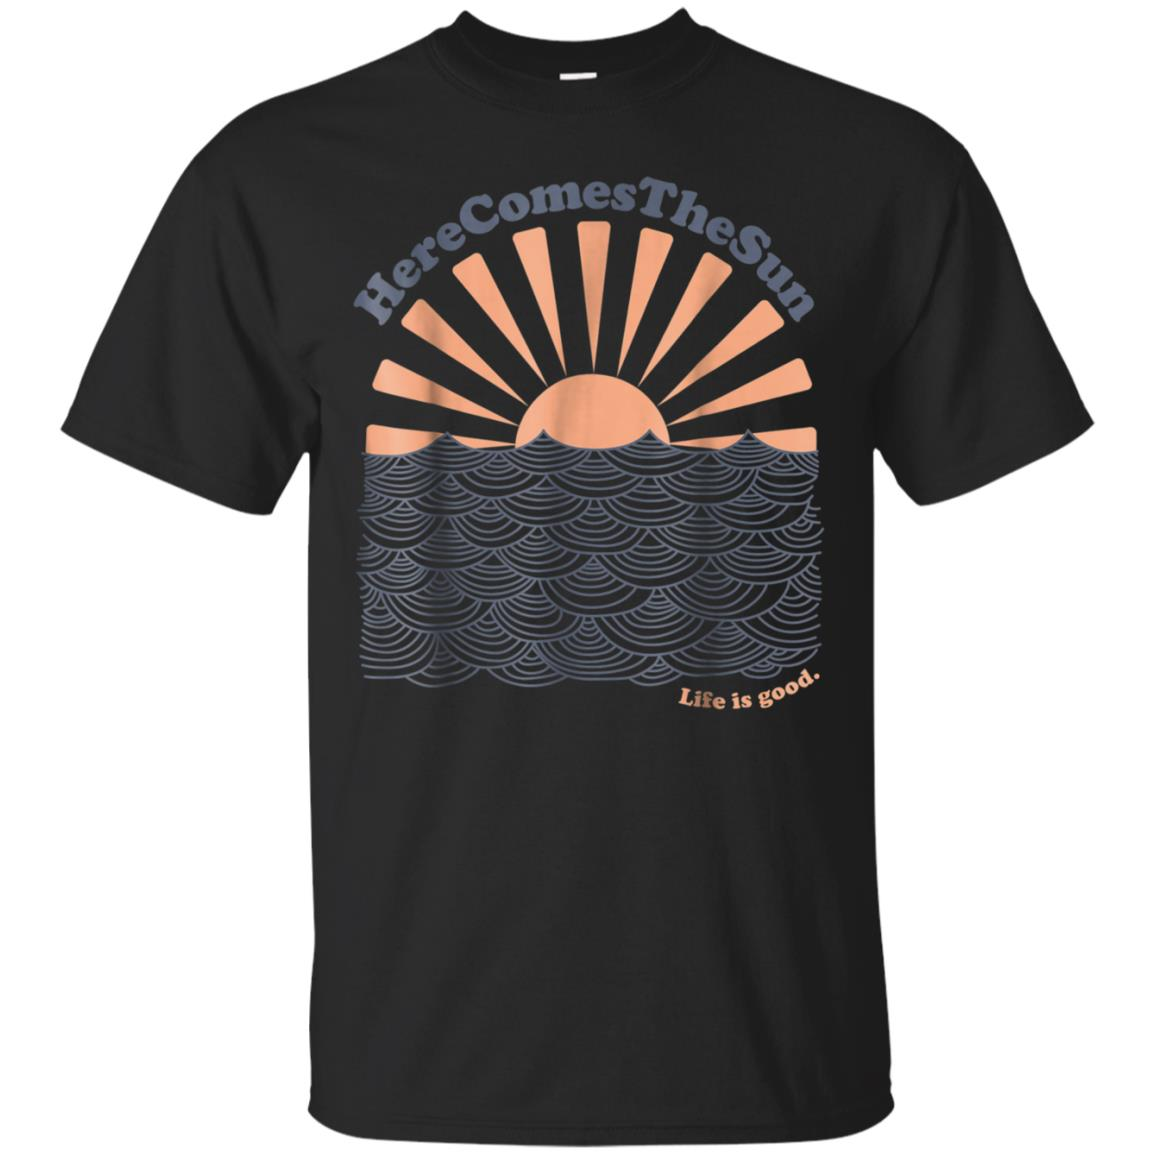 Here Comes The Sun, Positive Energy, Summer Graphics Tee 99promocode